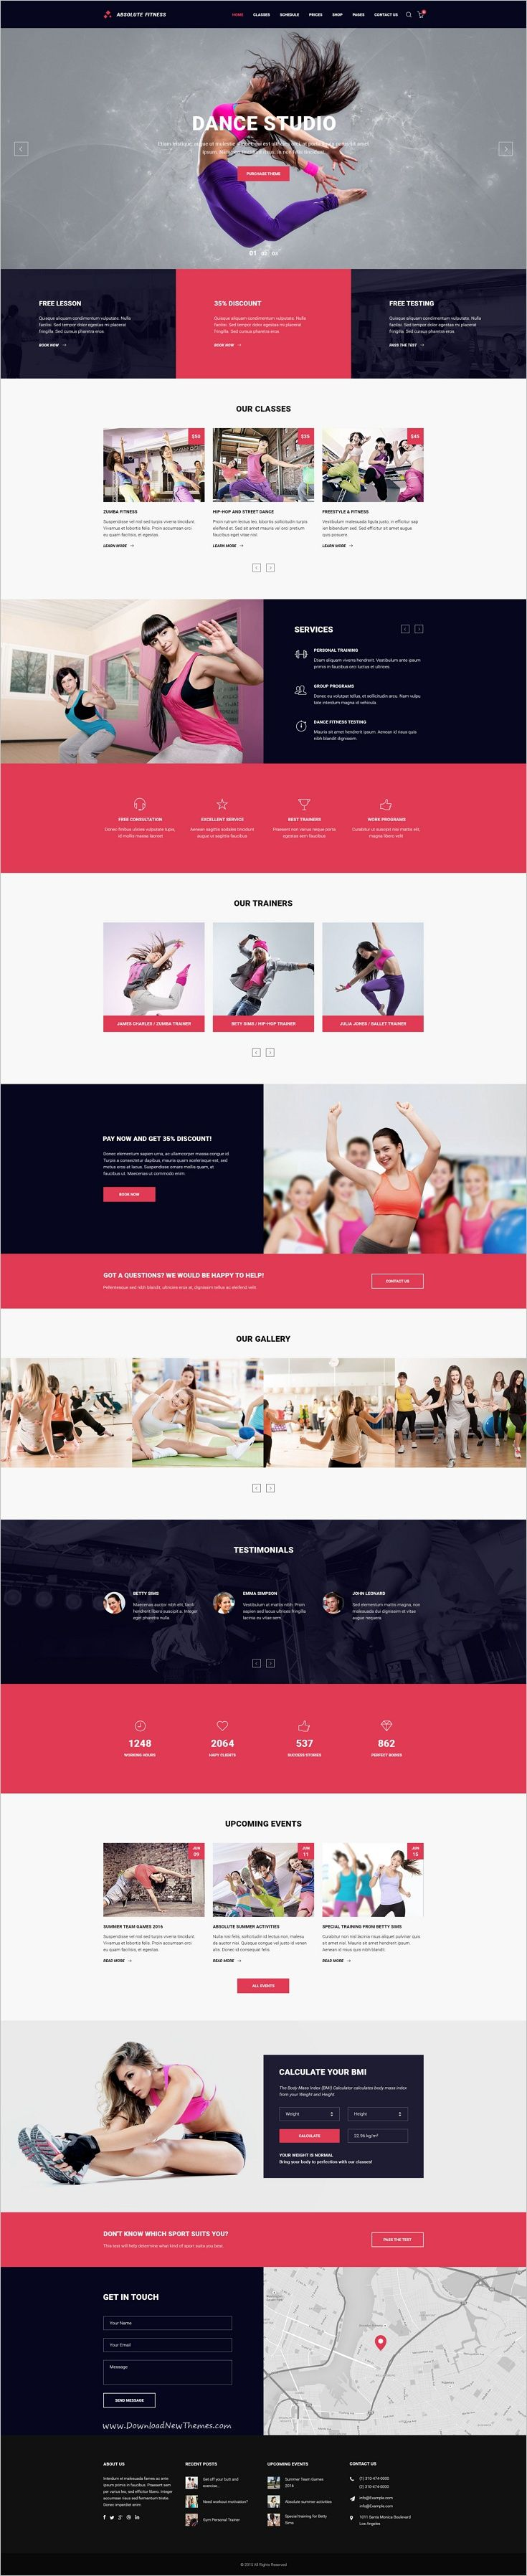 Absolute Fitness is a modern and functional #PSD #Template for #dance #studio sports clubs in different directions: Fitness, GYM, Bodybuilding, Boxing, Dancing, Yoga, Personal Trainer website with 13 unique homepage layouts and 46 organized PSD pages download now➩ https://themeforest.net/item/absolute-fitness-psd-template/18599187?ref=Datasata